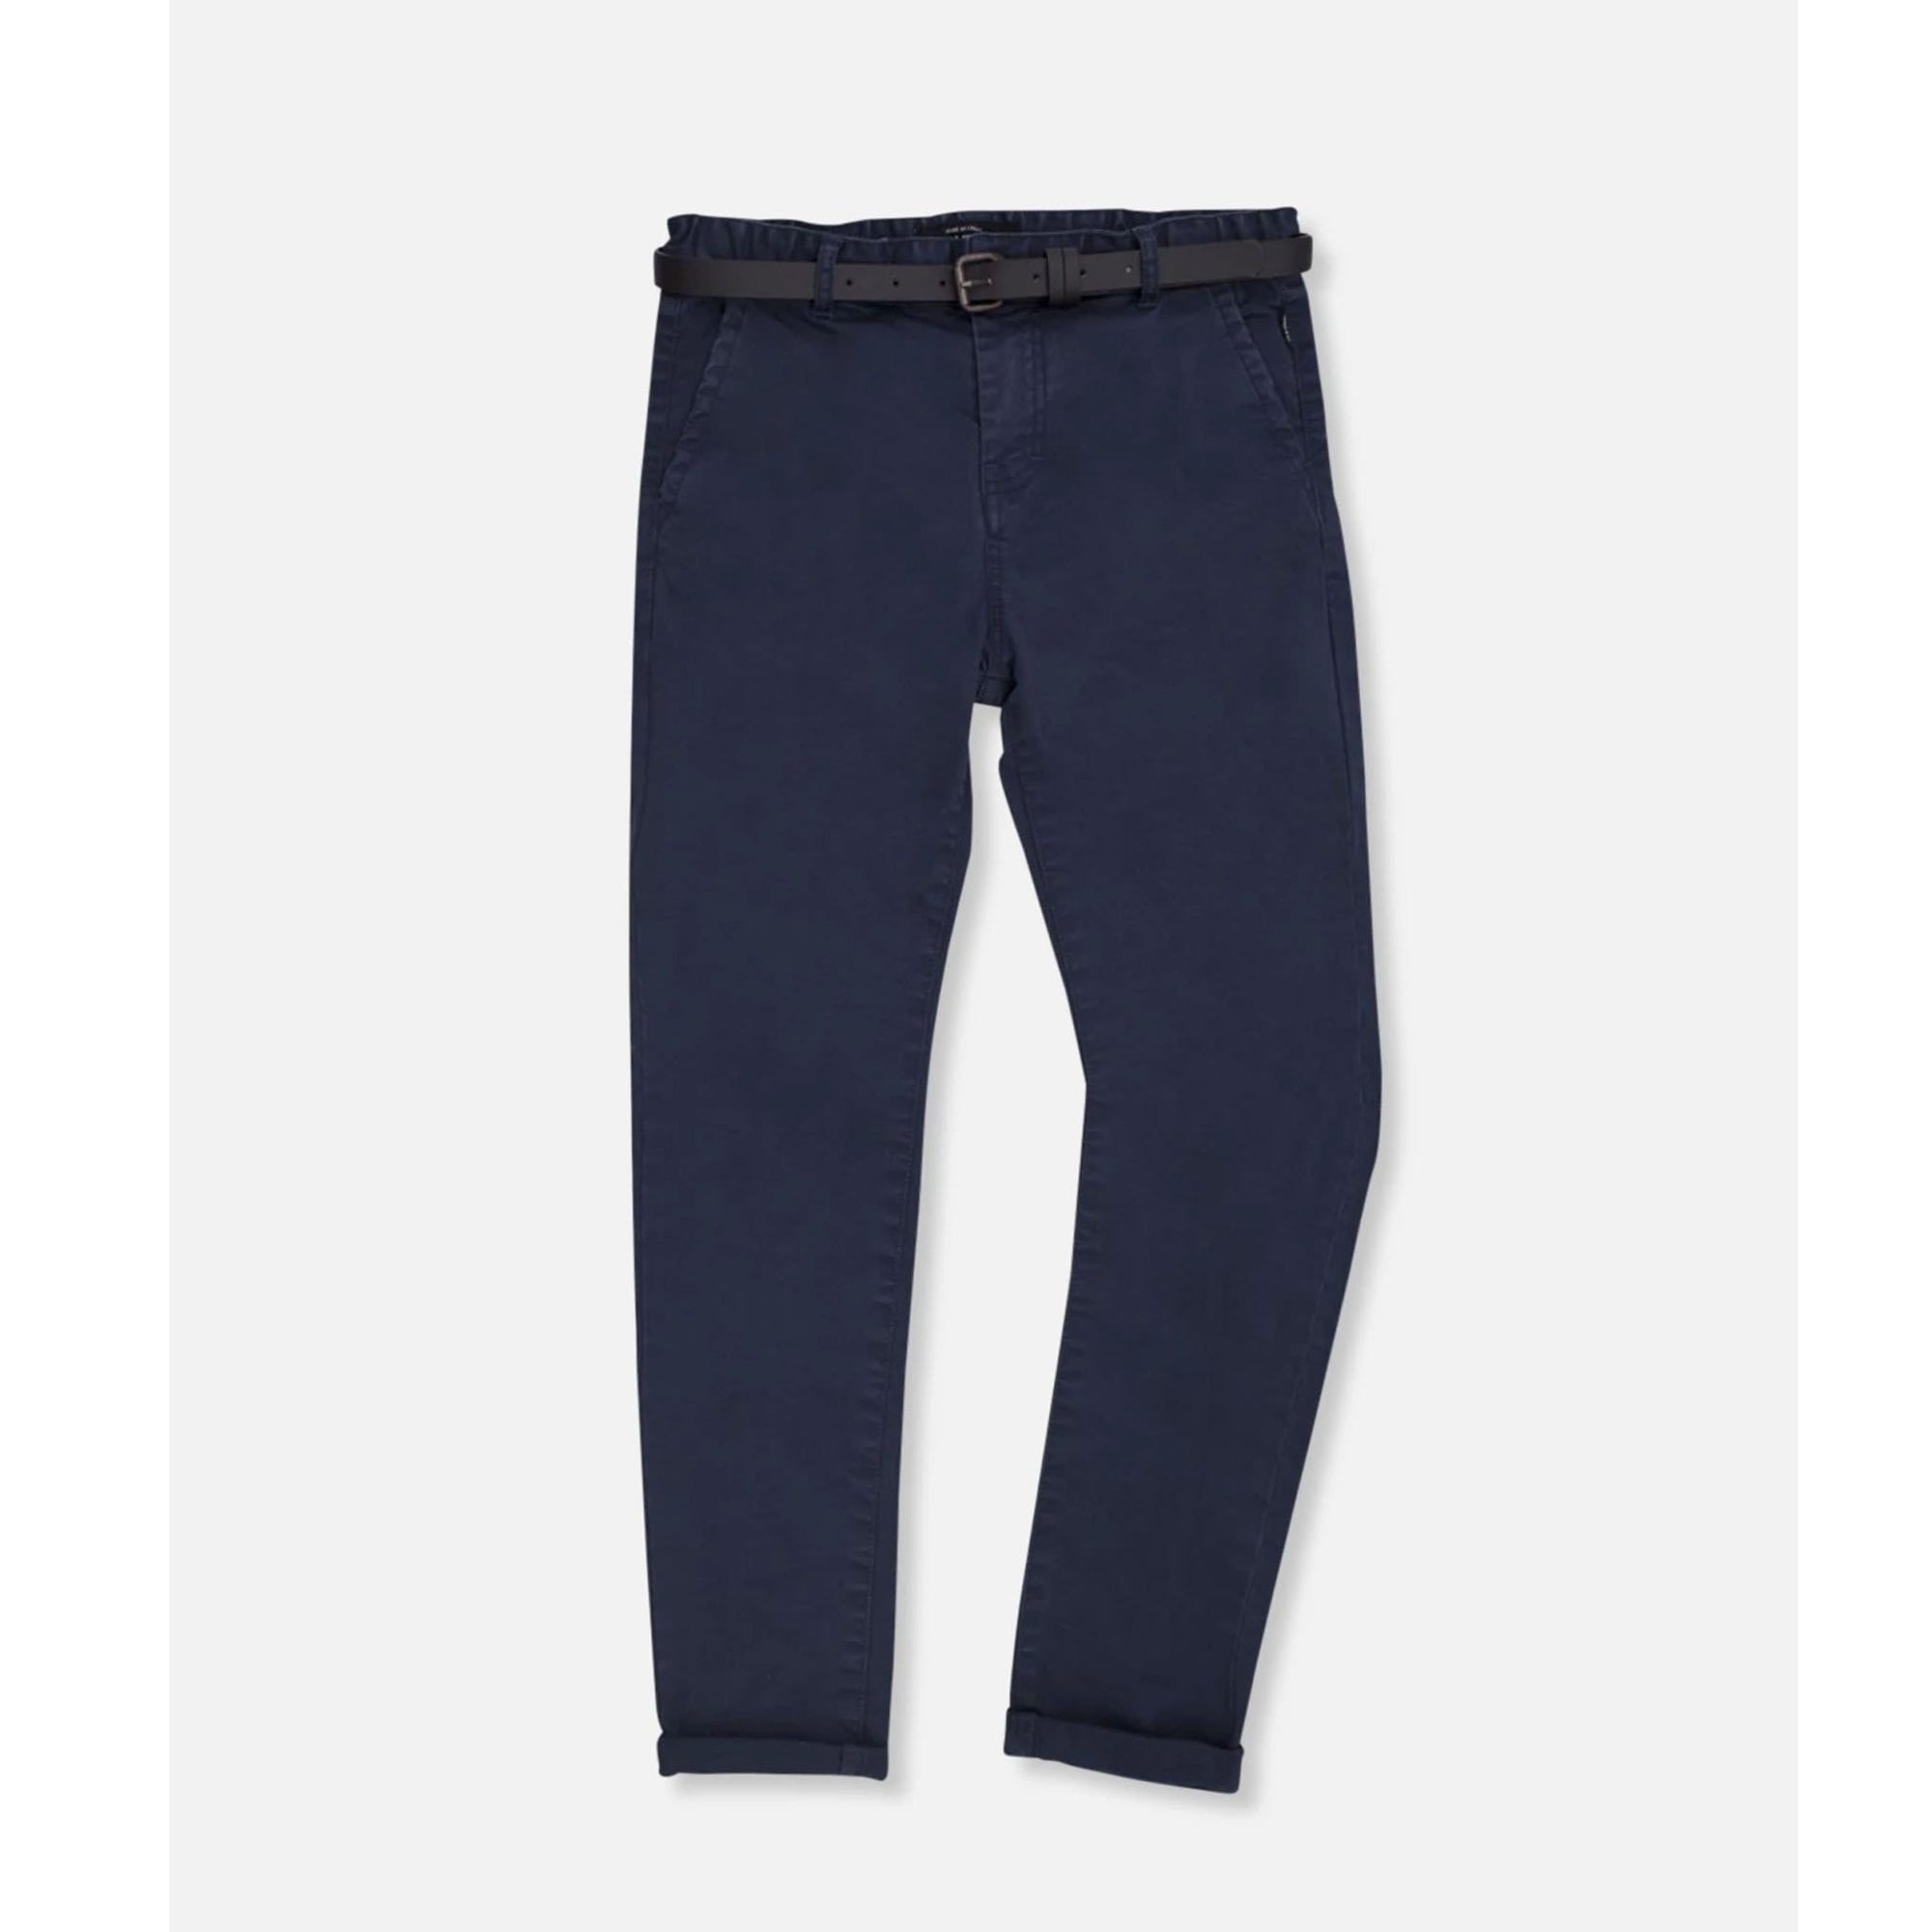 Industrie Kids Cuba Stretch Chino Navy